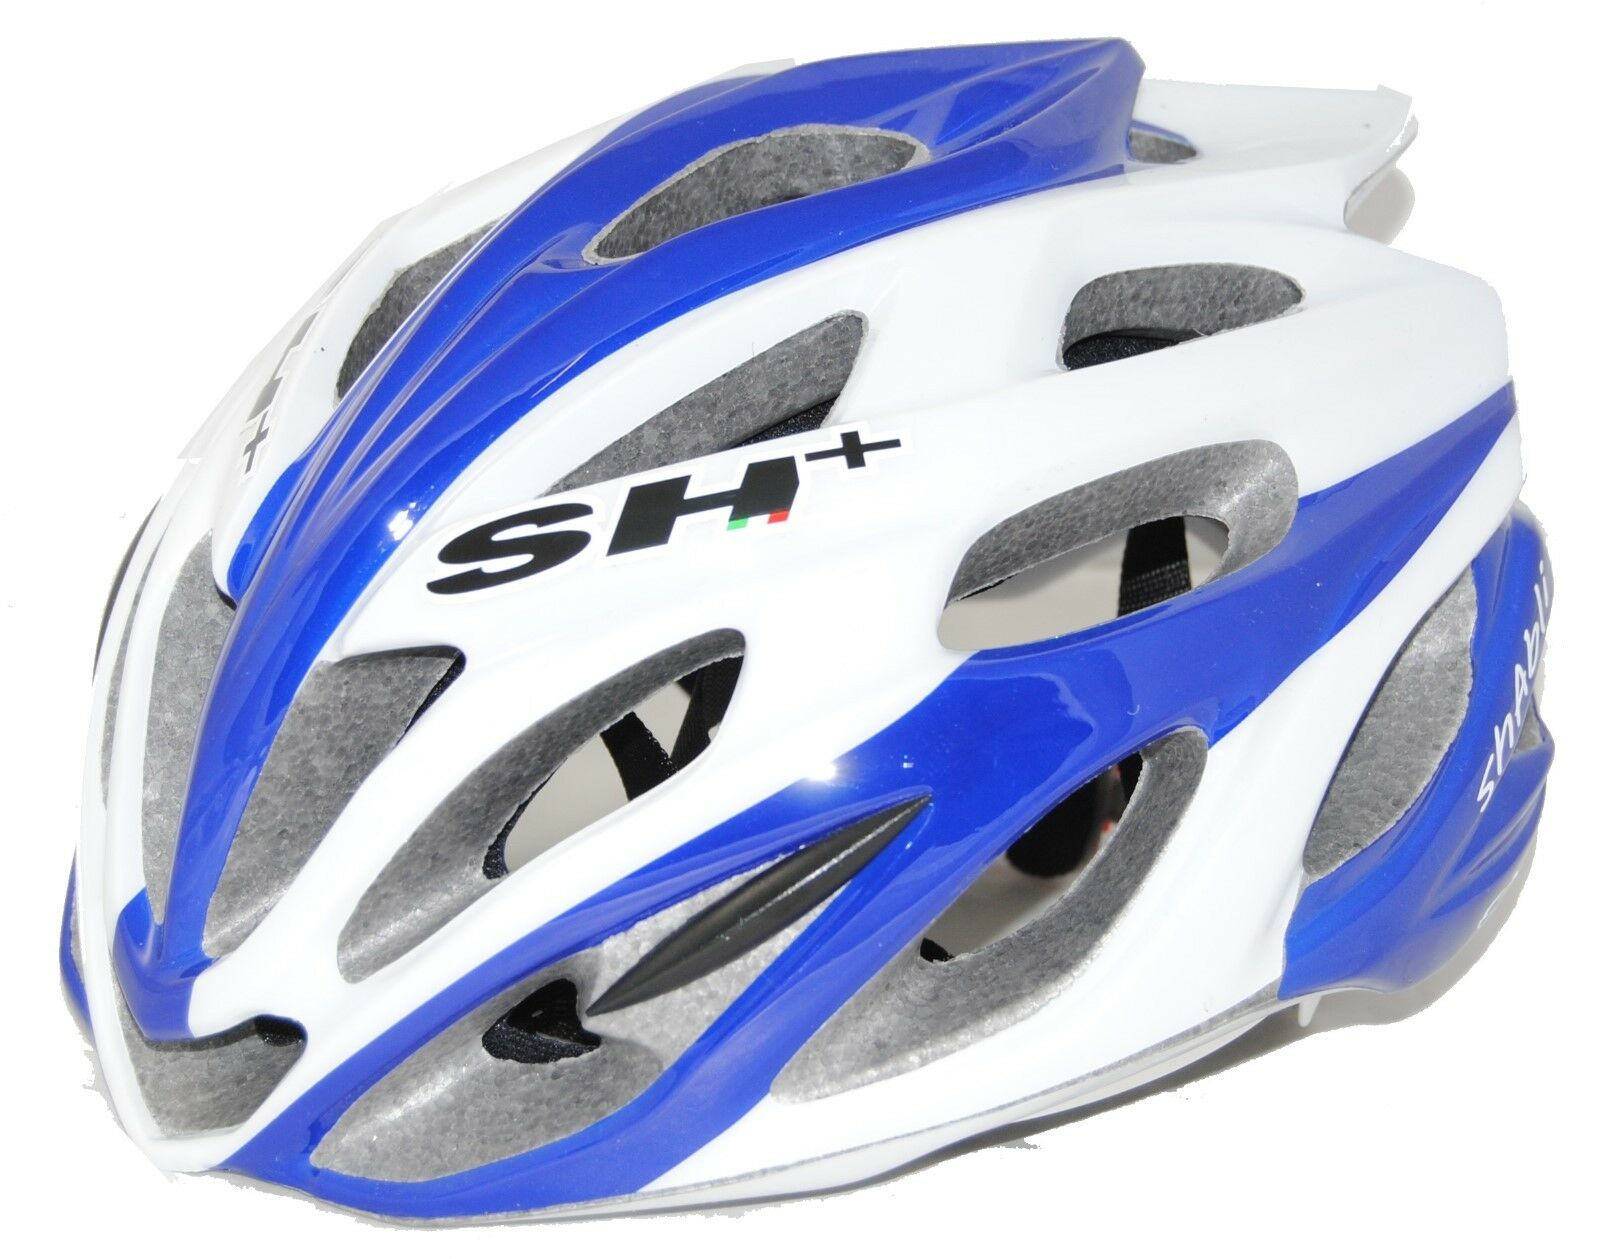 SH+  (SH Plus) Shabli Cycling Bicycle Helmet - bluee   White  (Was  199.99)  save up to 70% discount